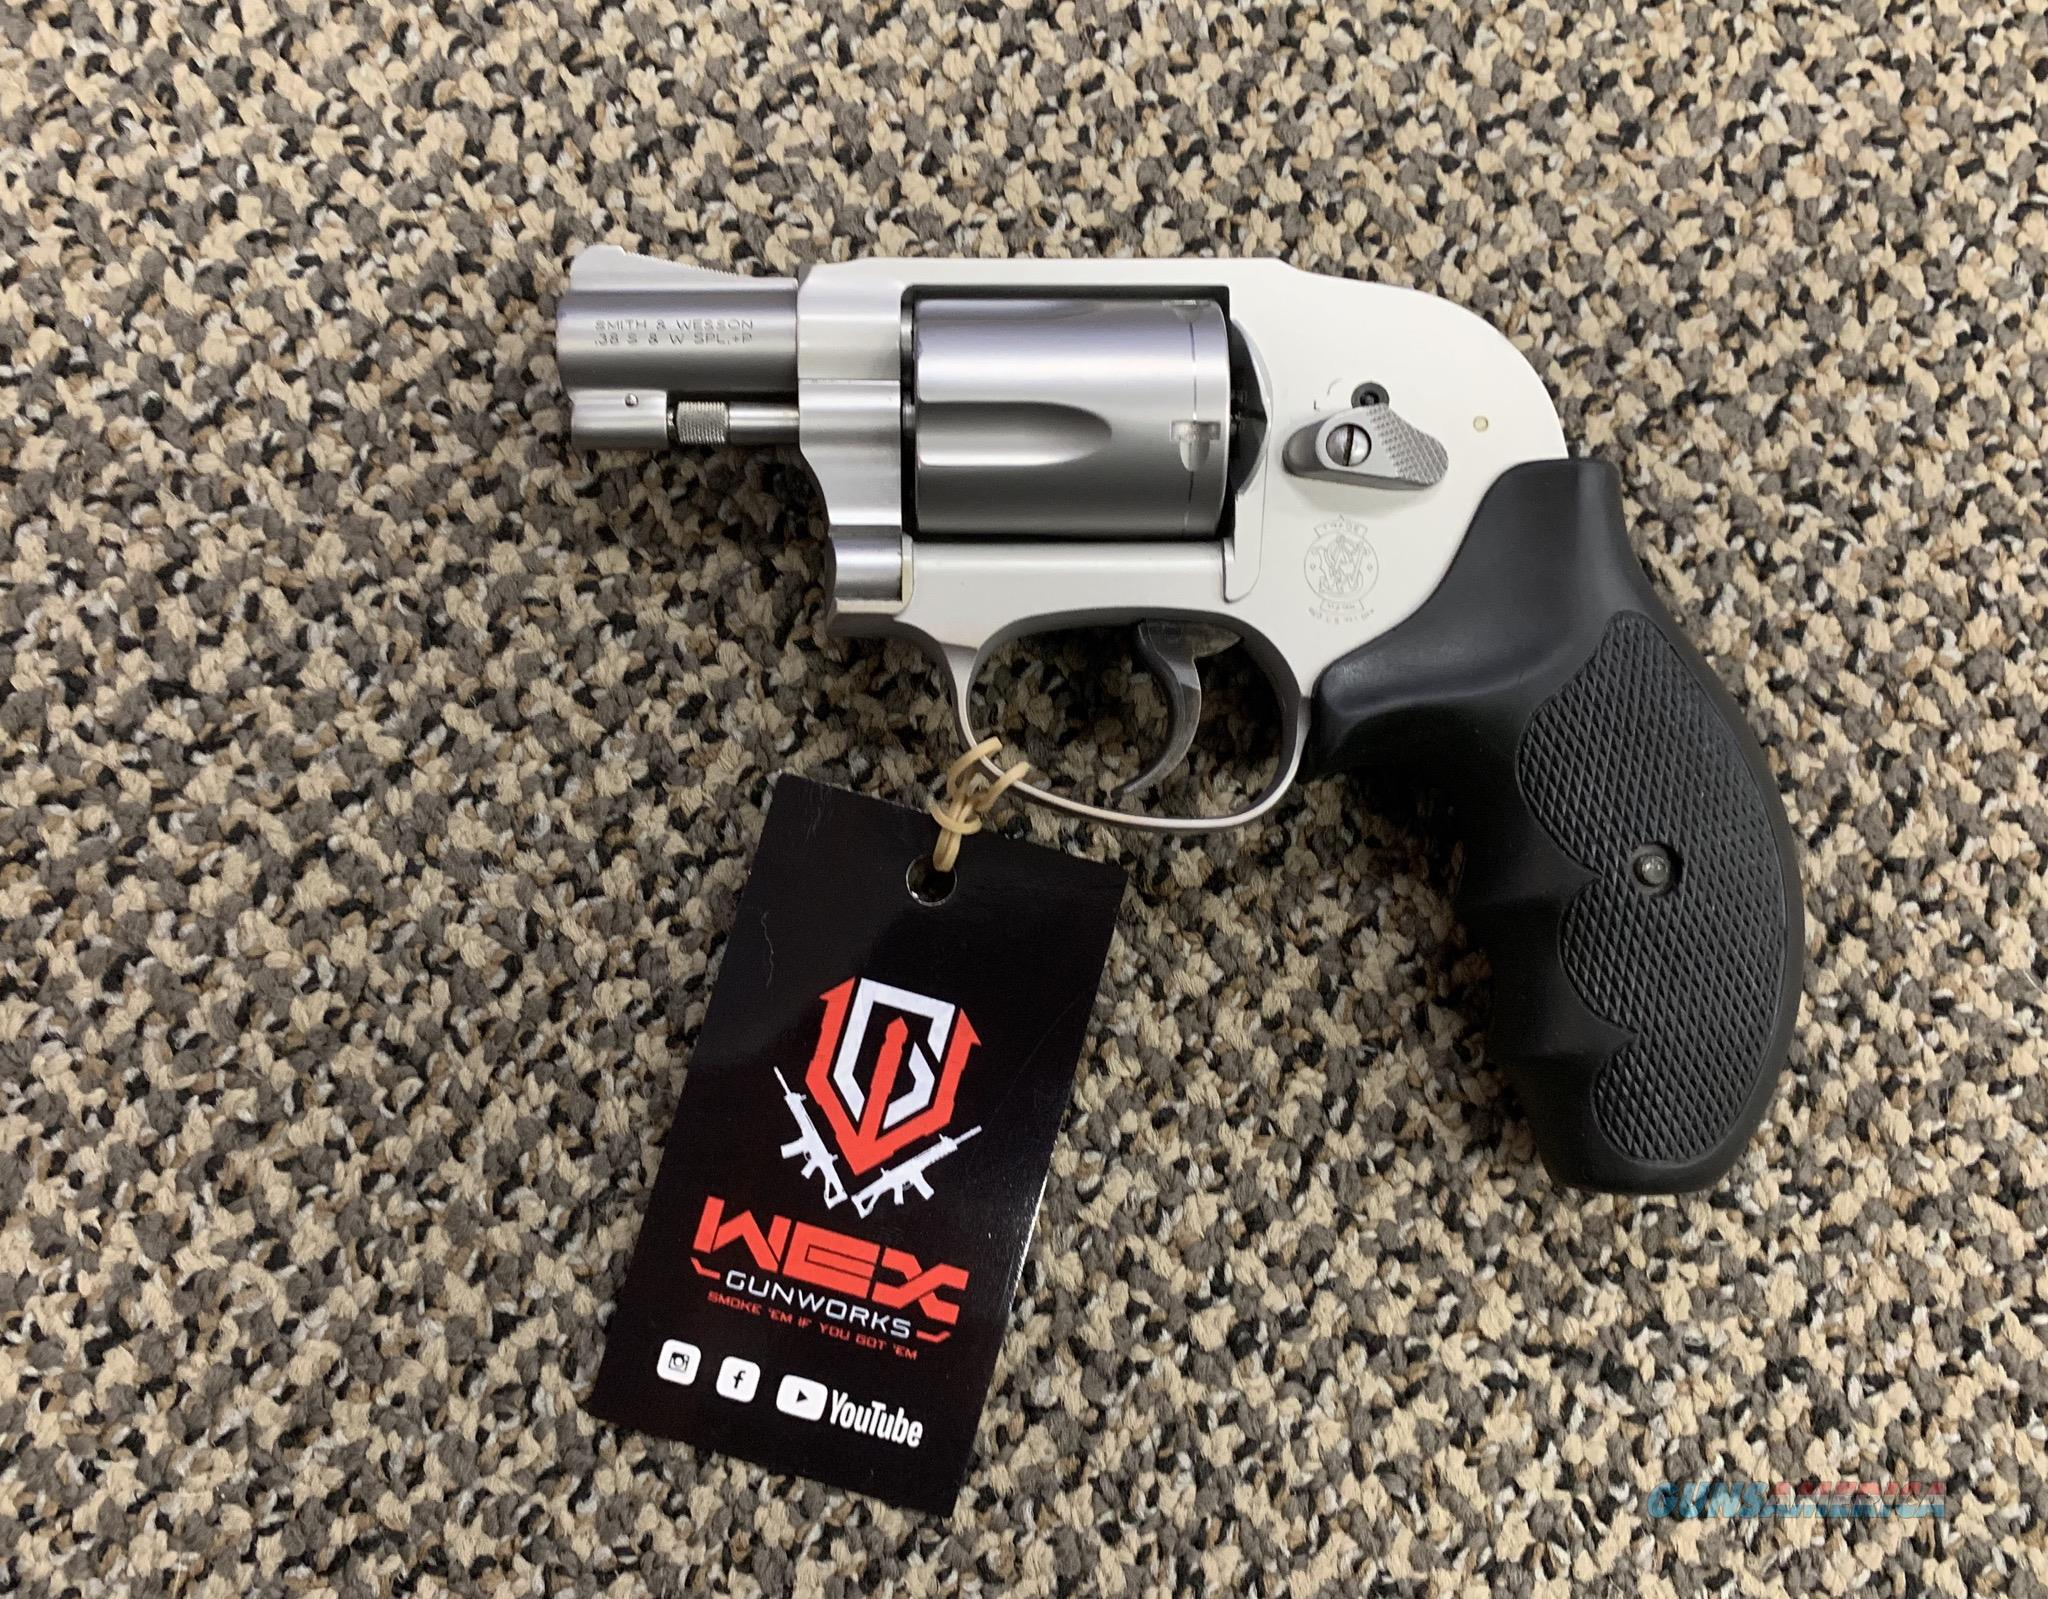 S&W MODEL 638-3 .38 SPECIAL 1.875 INCH BBL STAINLESS   Guns > Pistols > Smith & Wesson Revolvers > Small Frame ( J )